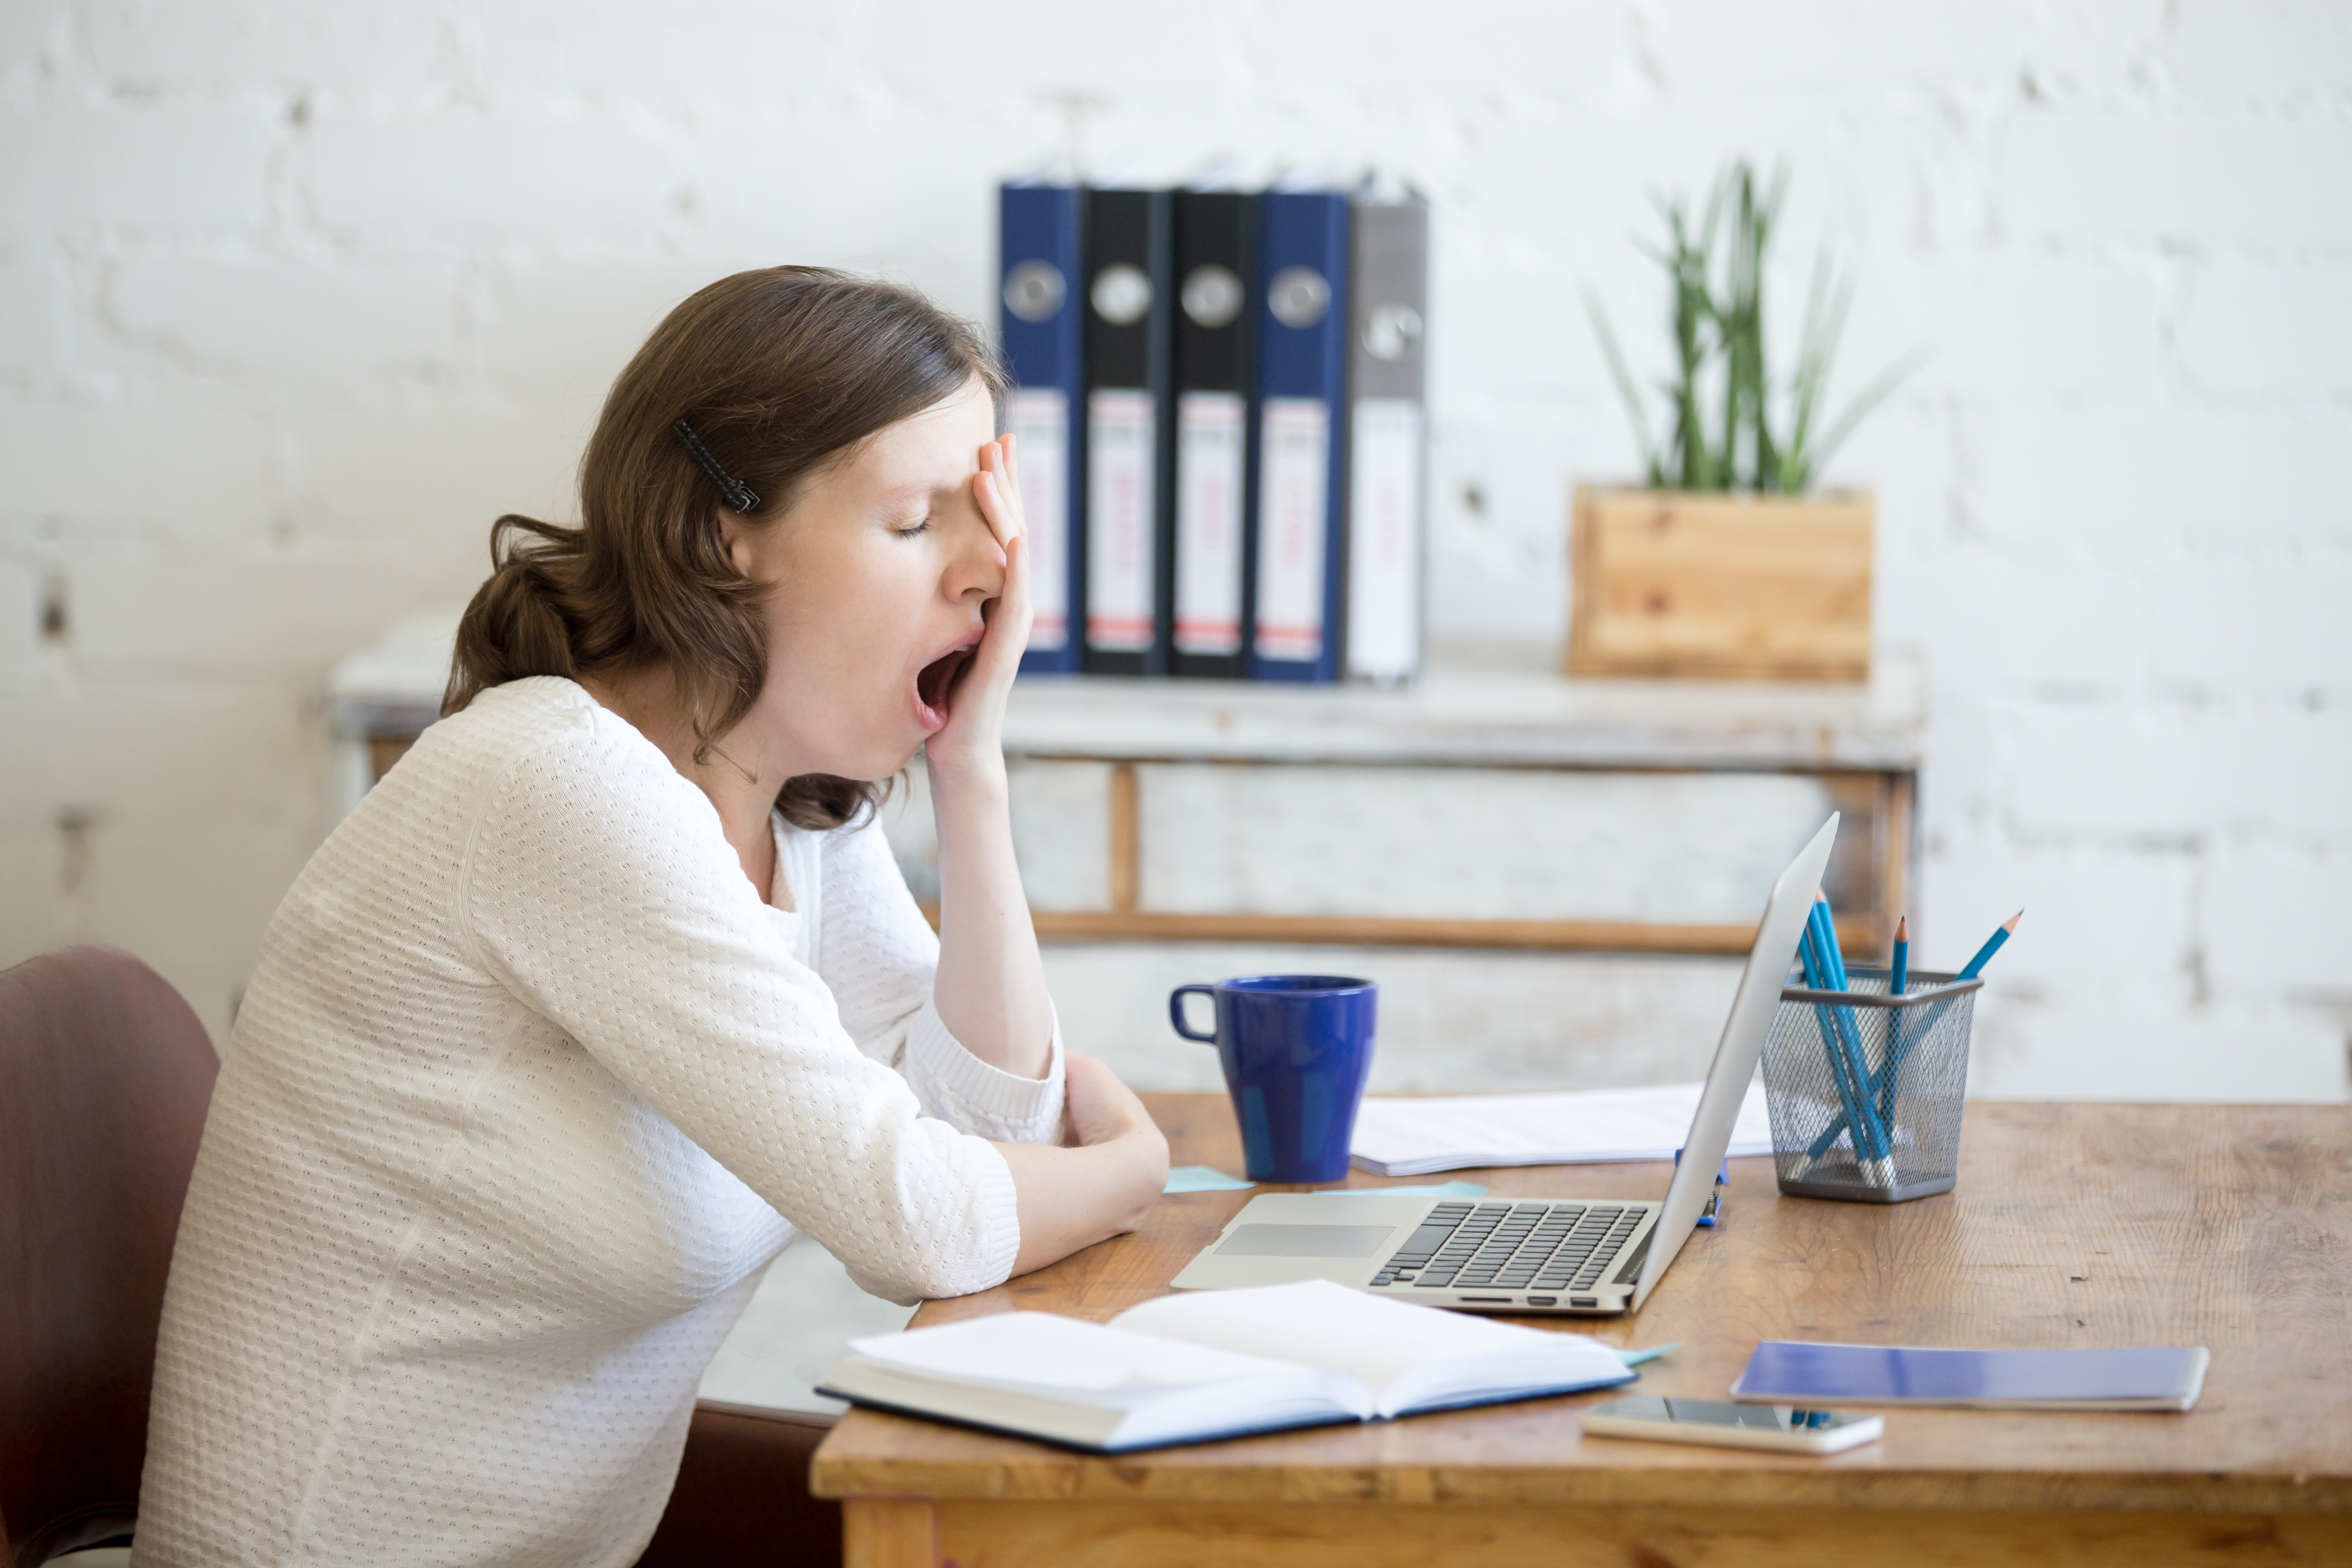 bigstock-Sleepy-Young-Worker-Woman-Yawn-143681474 Interesting Content for Boring Industries